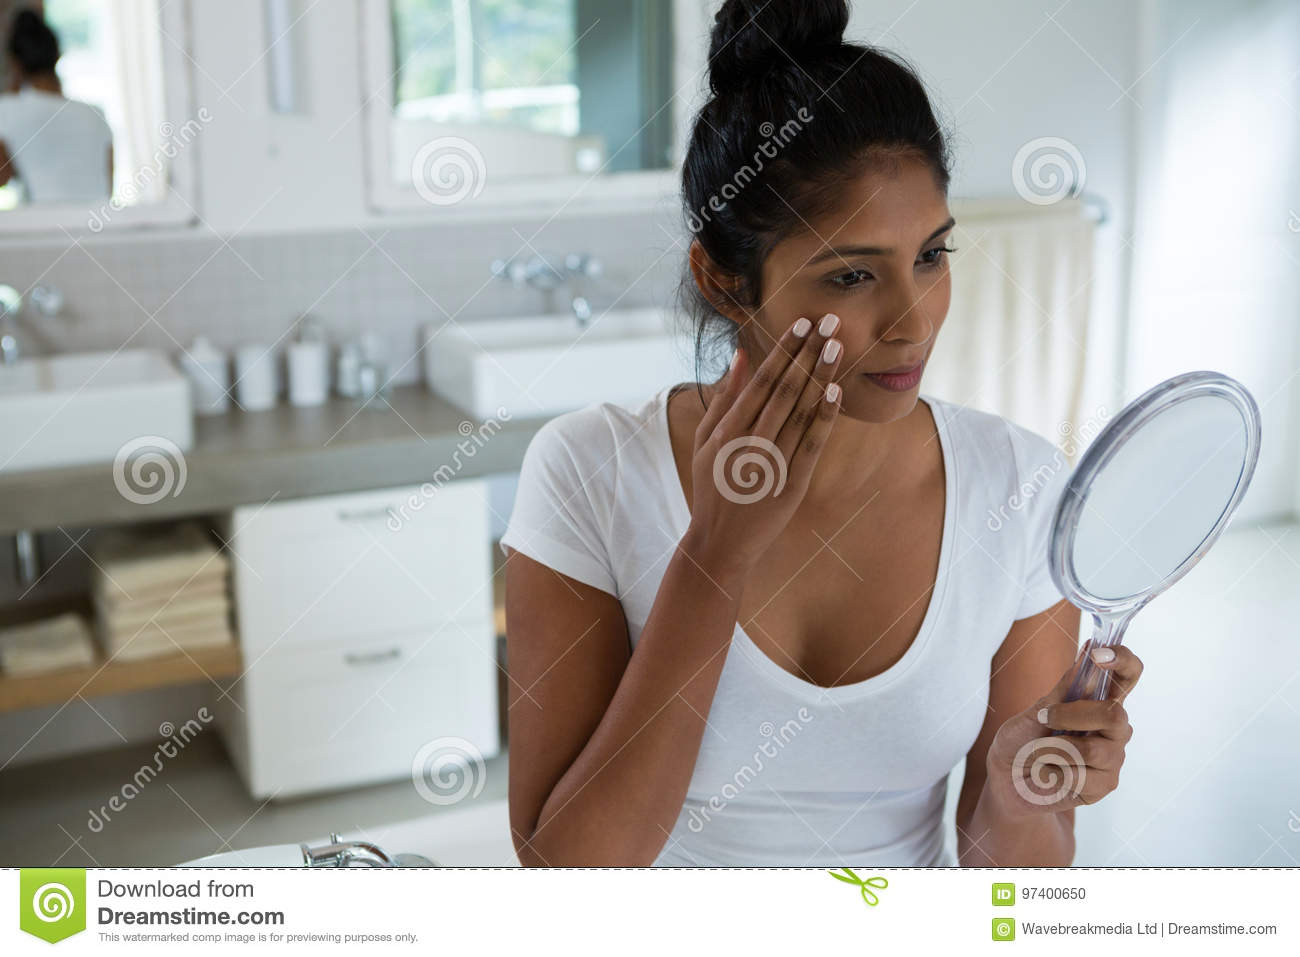 woman holding hand mirror. Download Woman Holding Hand Mirror Stock Photo. Image Of Homey - 97400650 Y